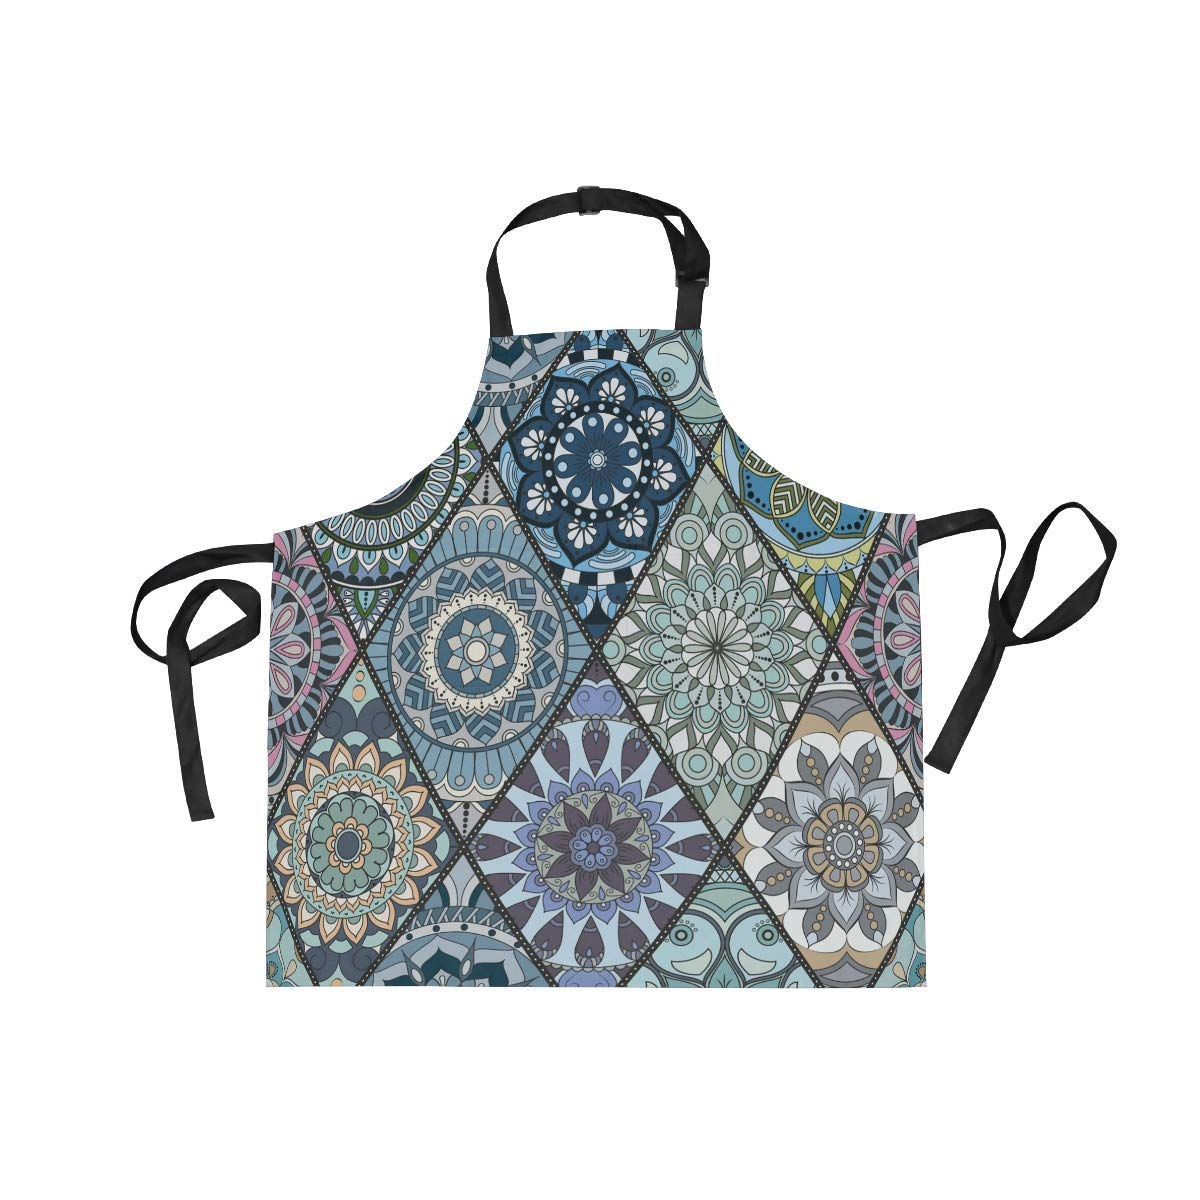 Unisex Apron Vintage Ethnic Style Flower Floral Mandala Adjustable Apron with Pockets for Men Women Kitchen Personal Decor Cooking Baking Kitchen Gardening Waist Apron Adult Apron,Twill,Multicolor